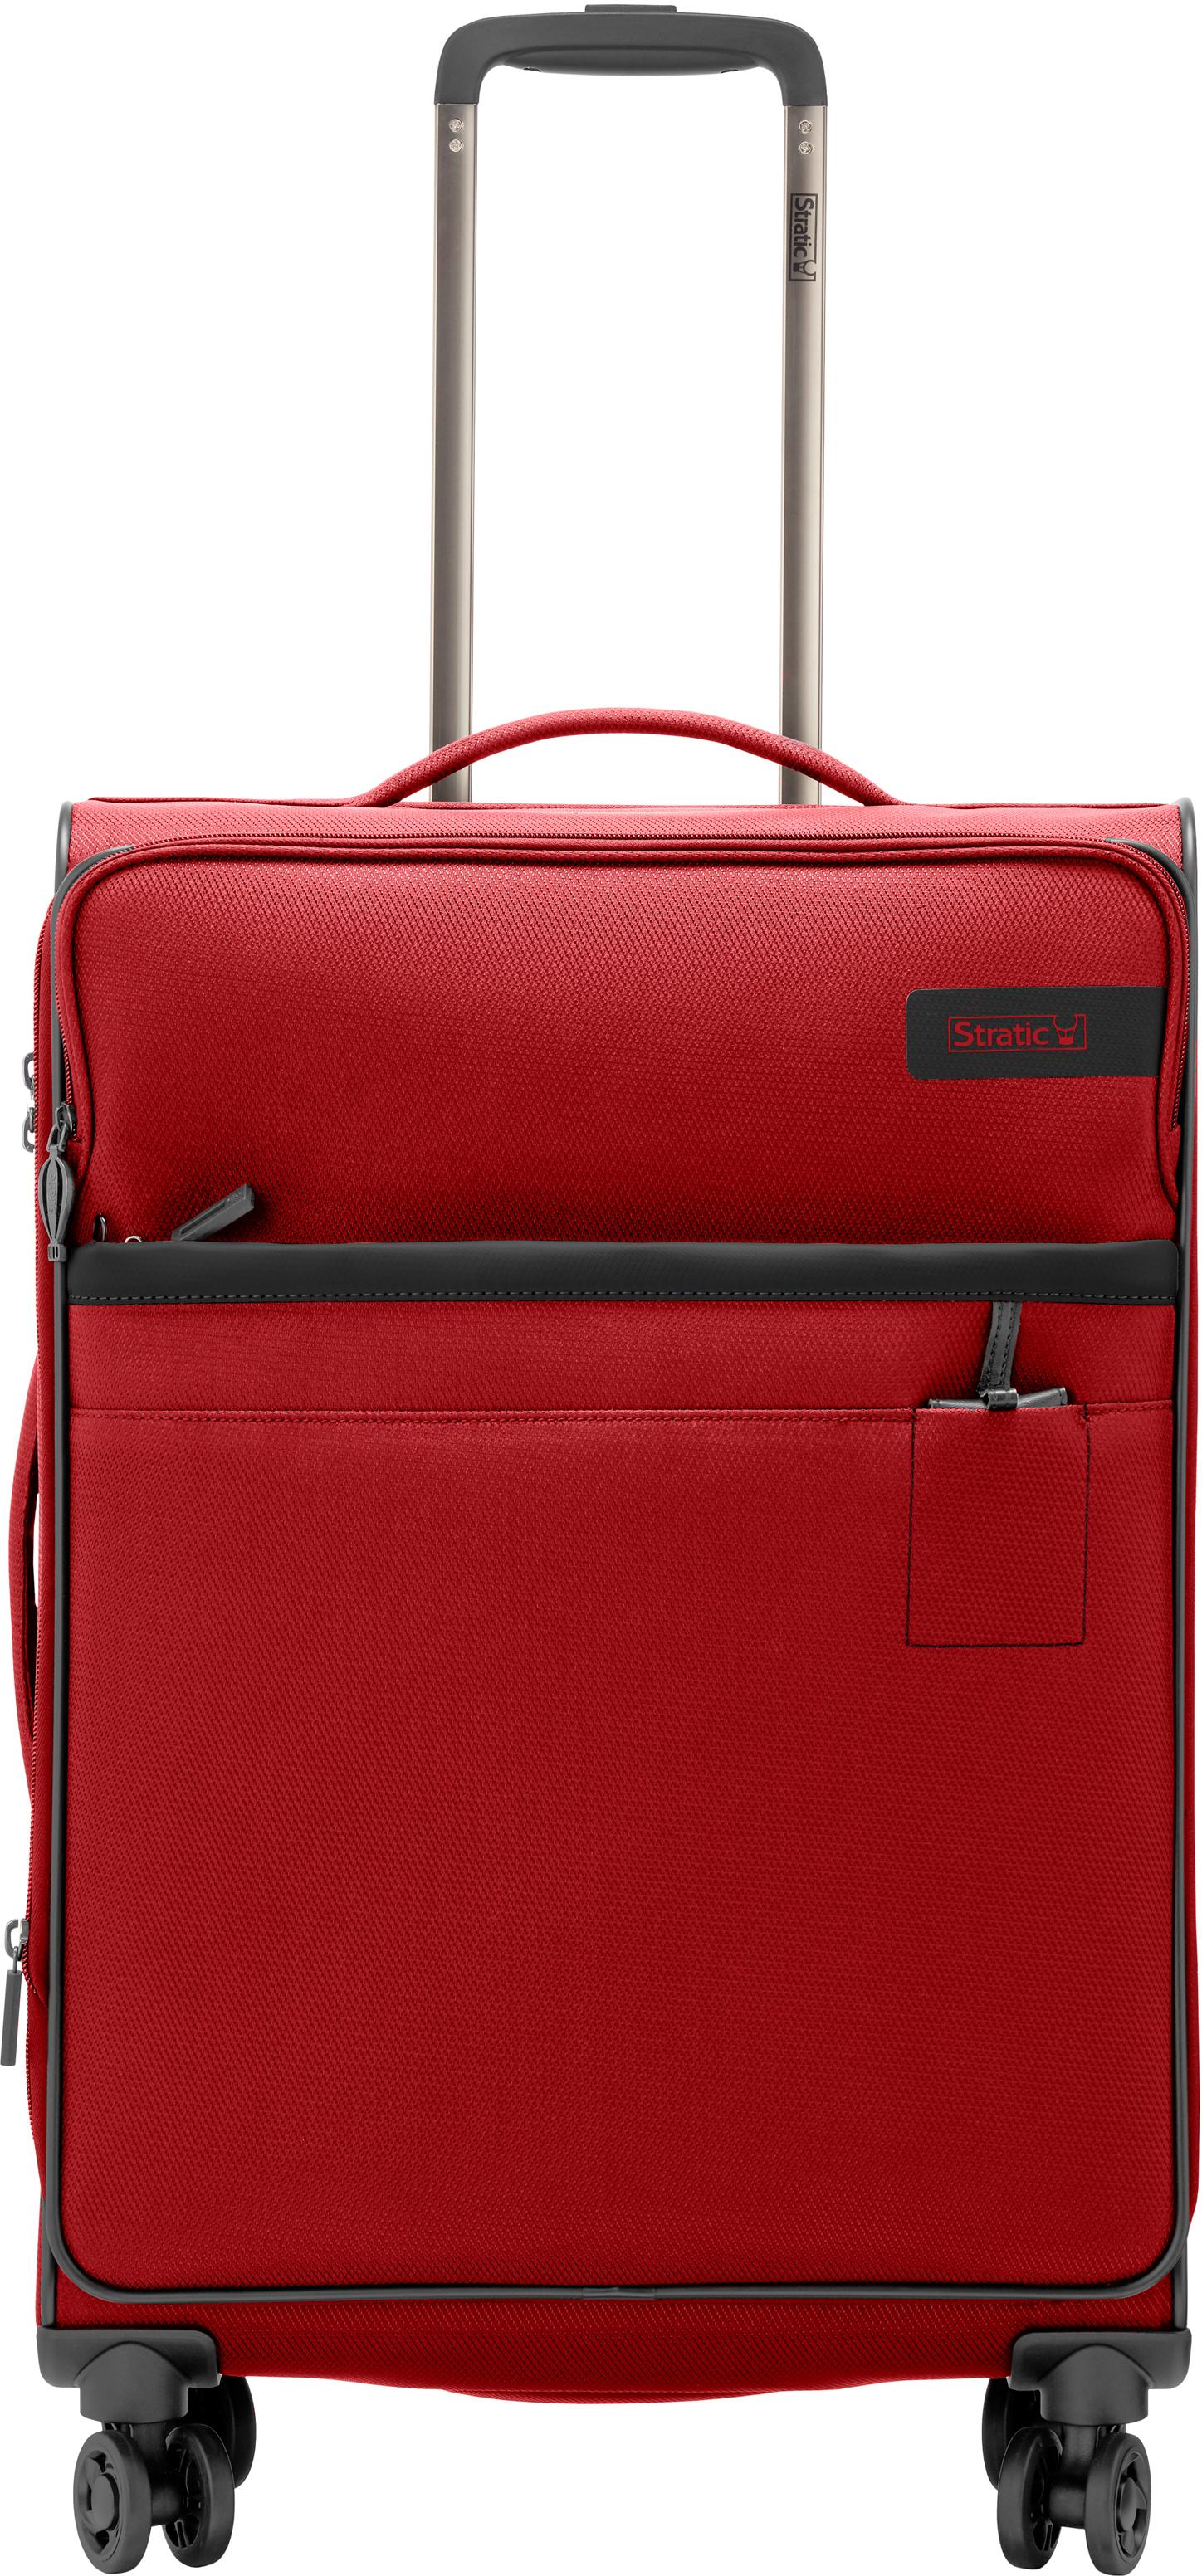 Stratic Weichgepäck-Trolley Stratic Light M, red, 4 Rollen | Taschen > Koffer & Trolleys > Trolleys | Rot | Stratic